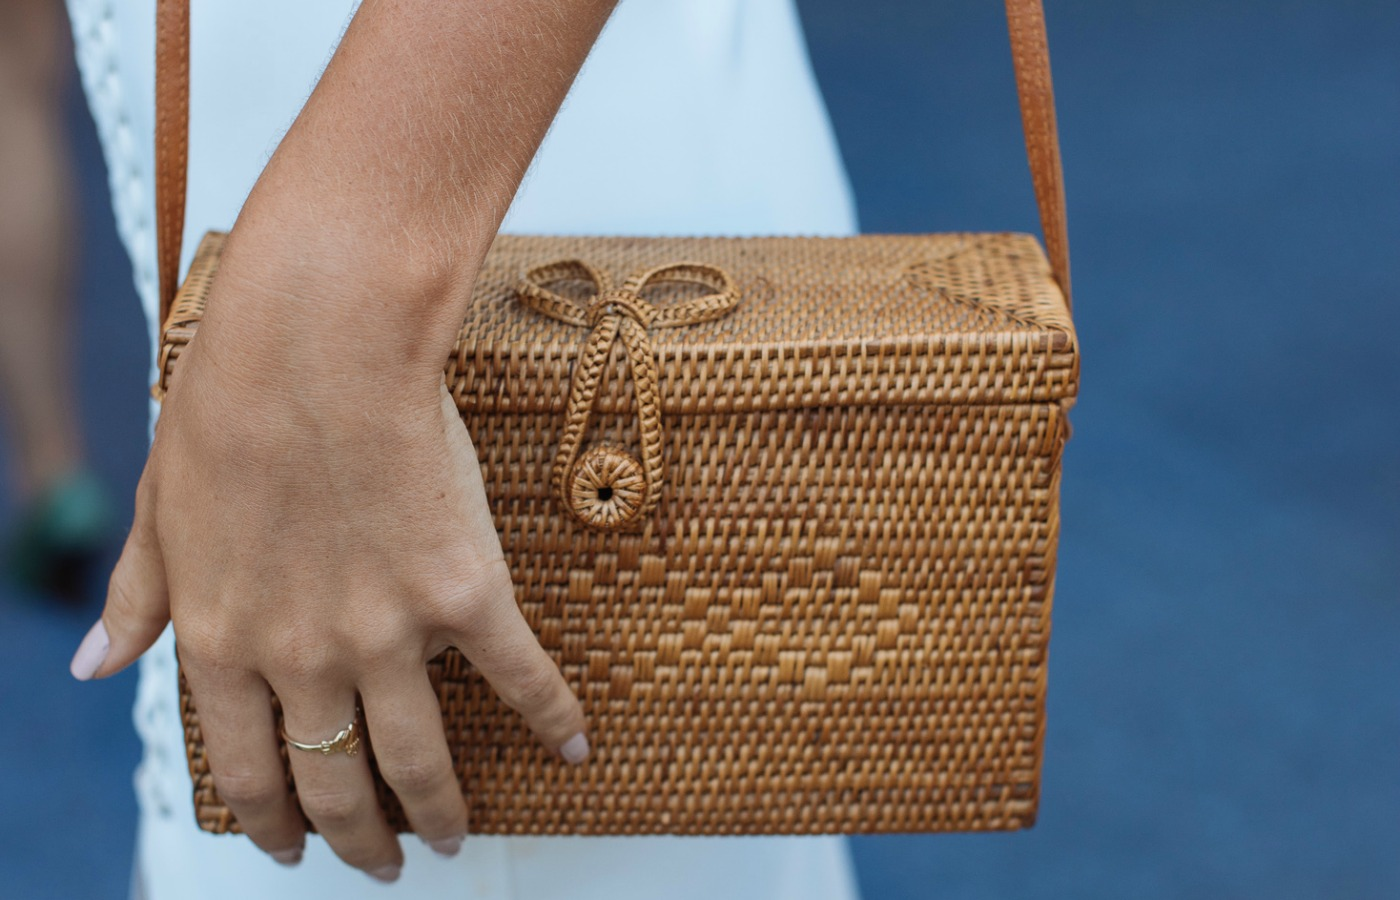 Straw clutch bag streetstyle fashion at royal randwick racecourse.